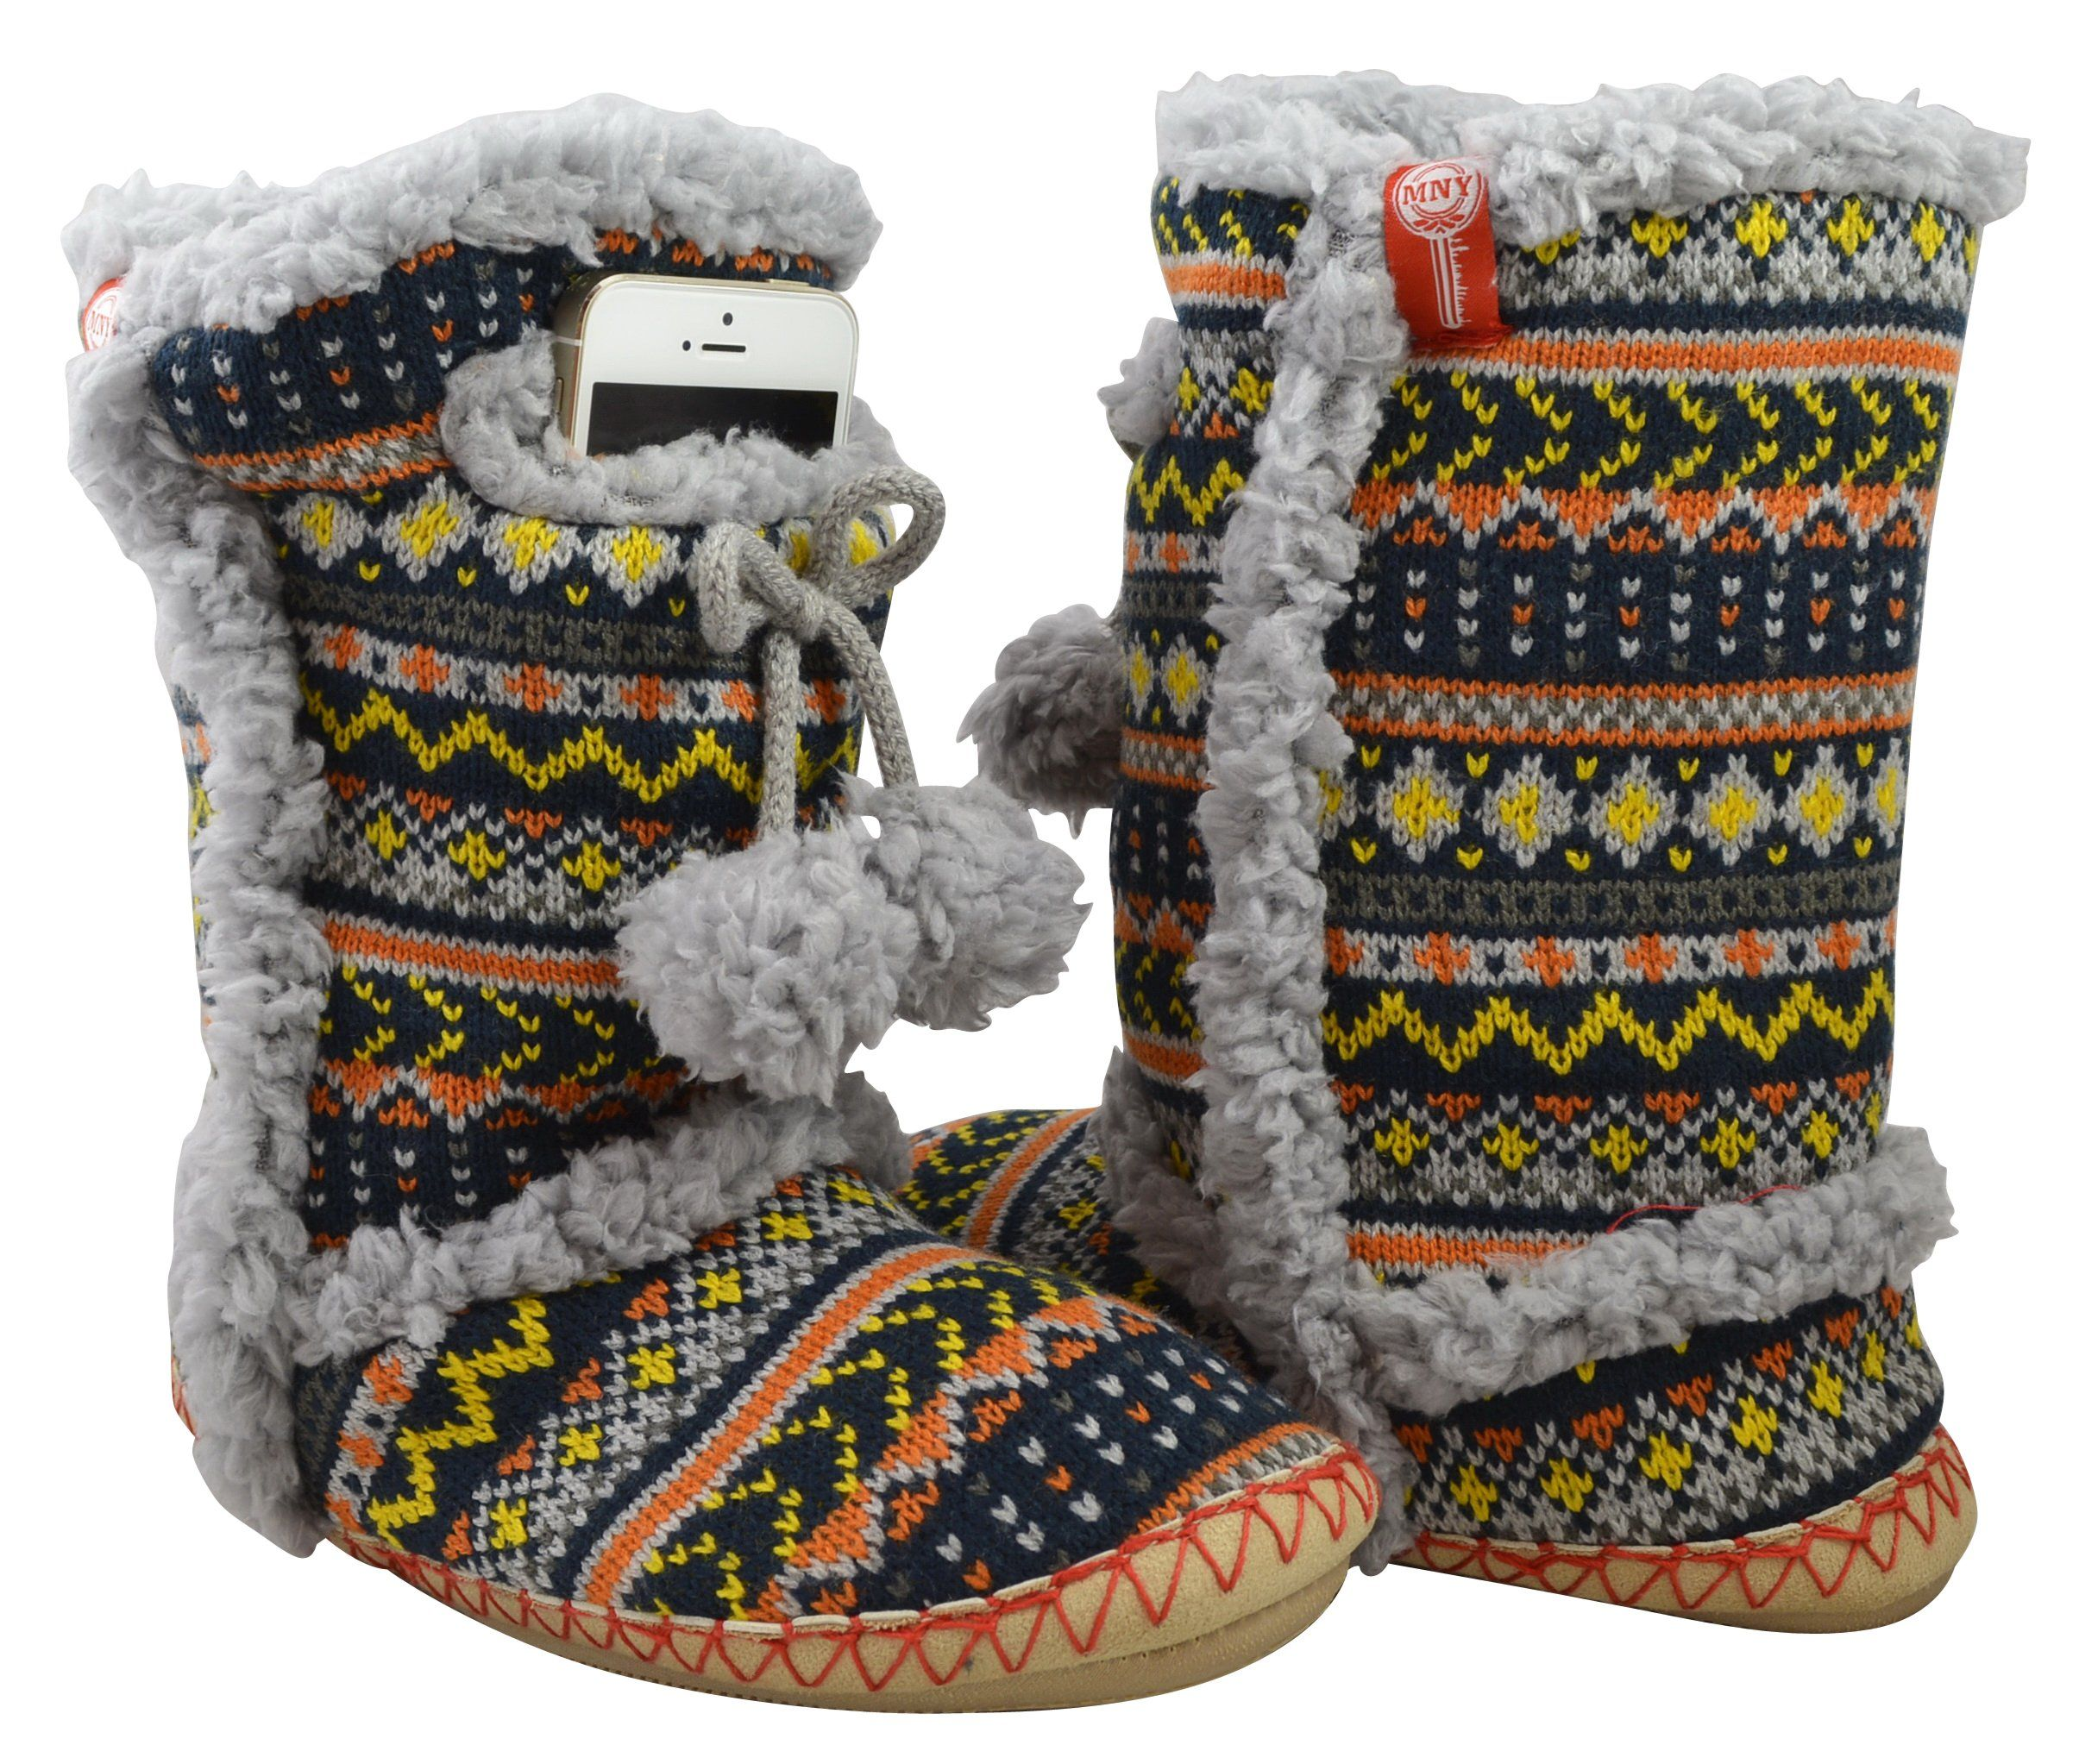 MINX NY - NAVAJO PATTERNED INDOOR/OUTDOOR BOOTIES WITH CELL PHONE ...